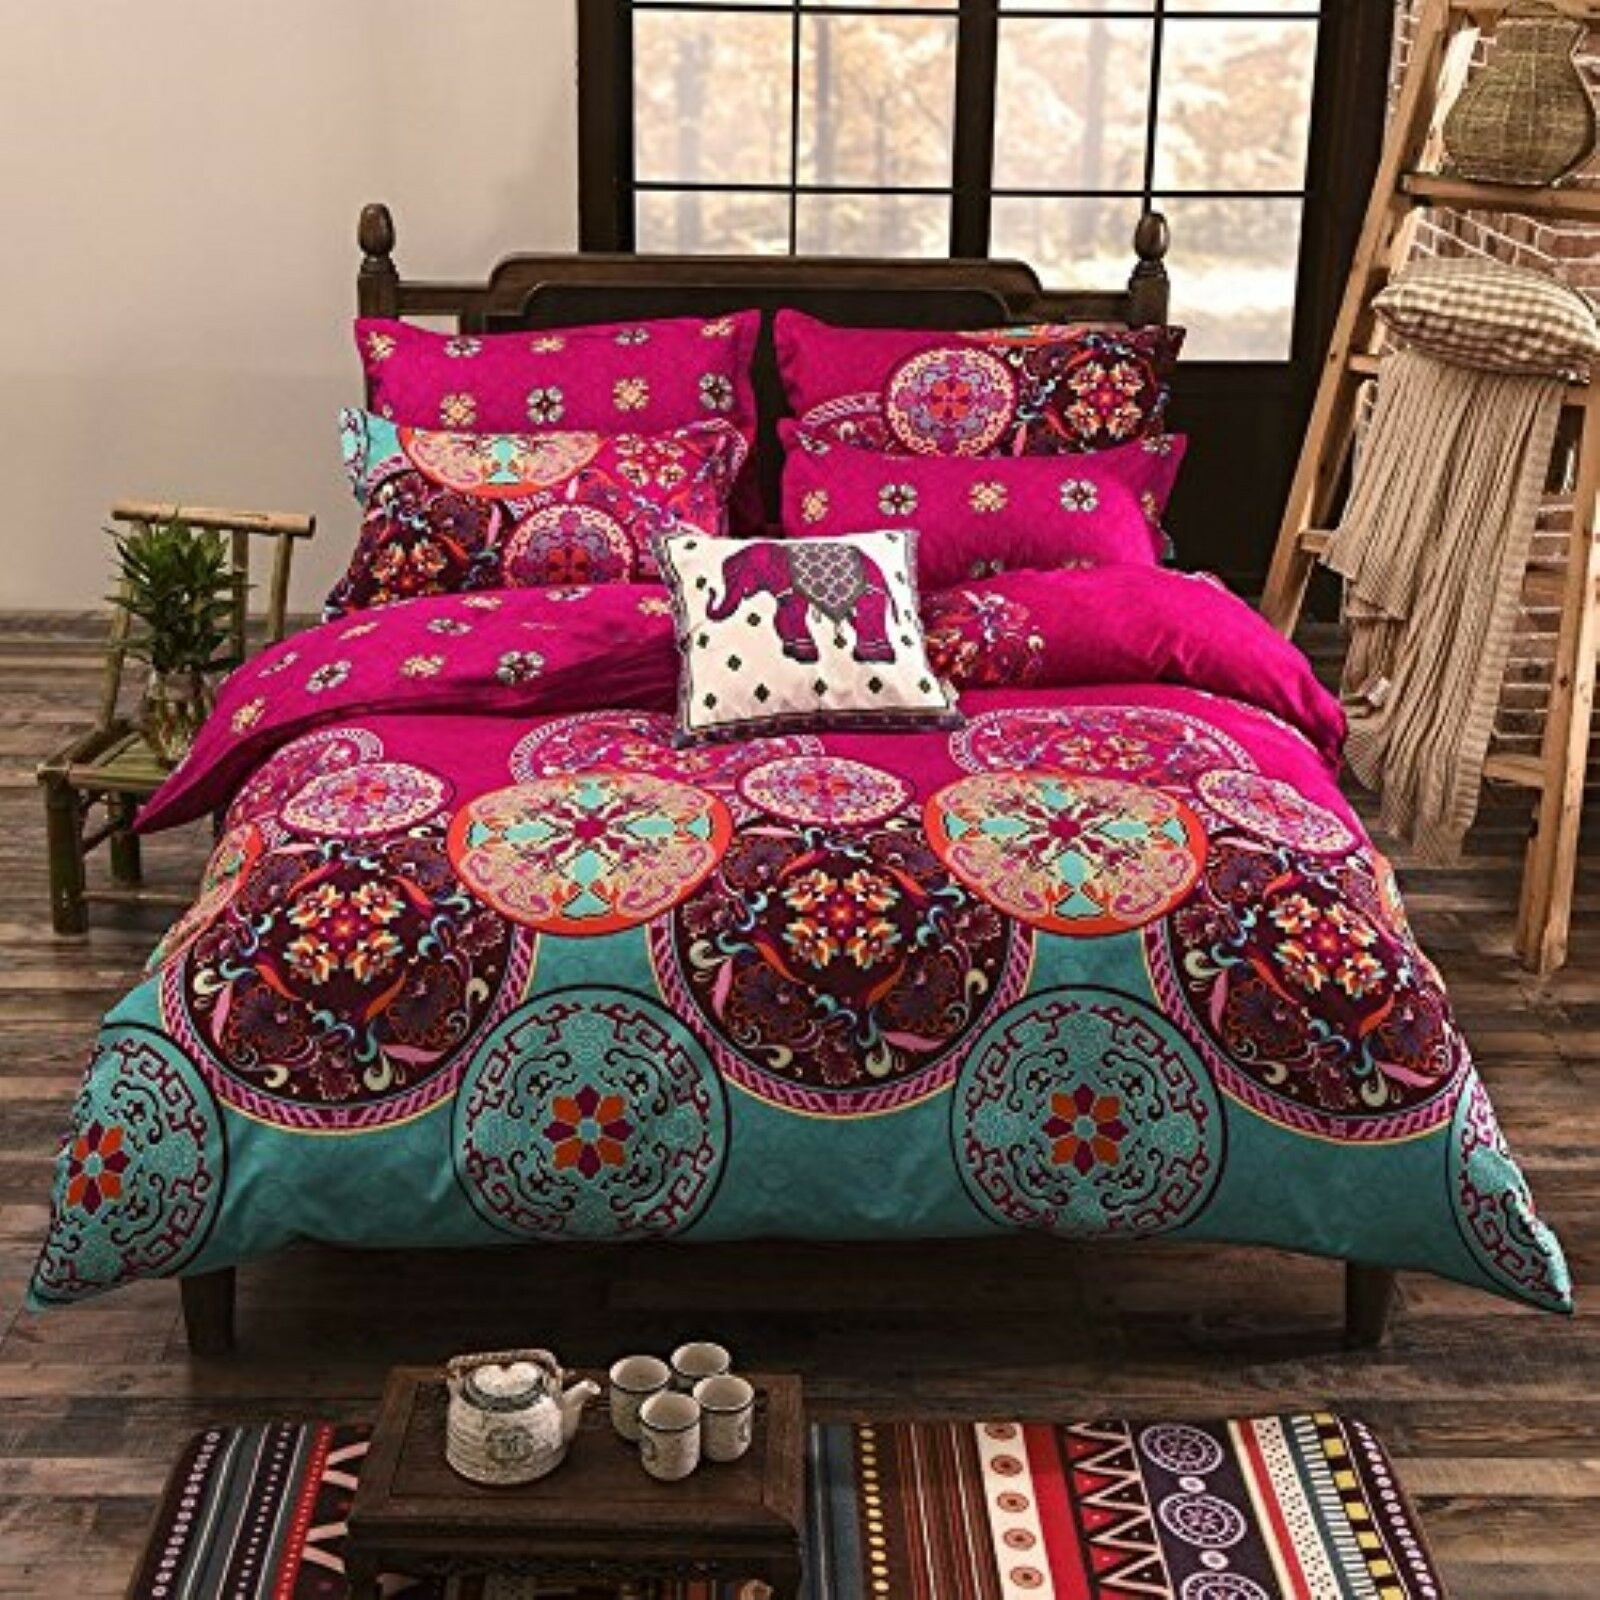 Soft Bedding Duvet Cover Set Bohemian Oriental Boho Chic Man